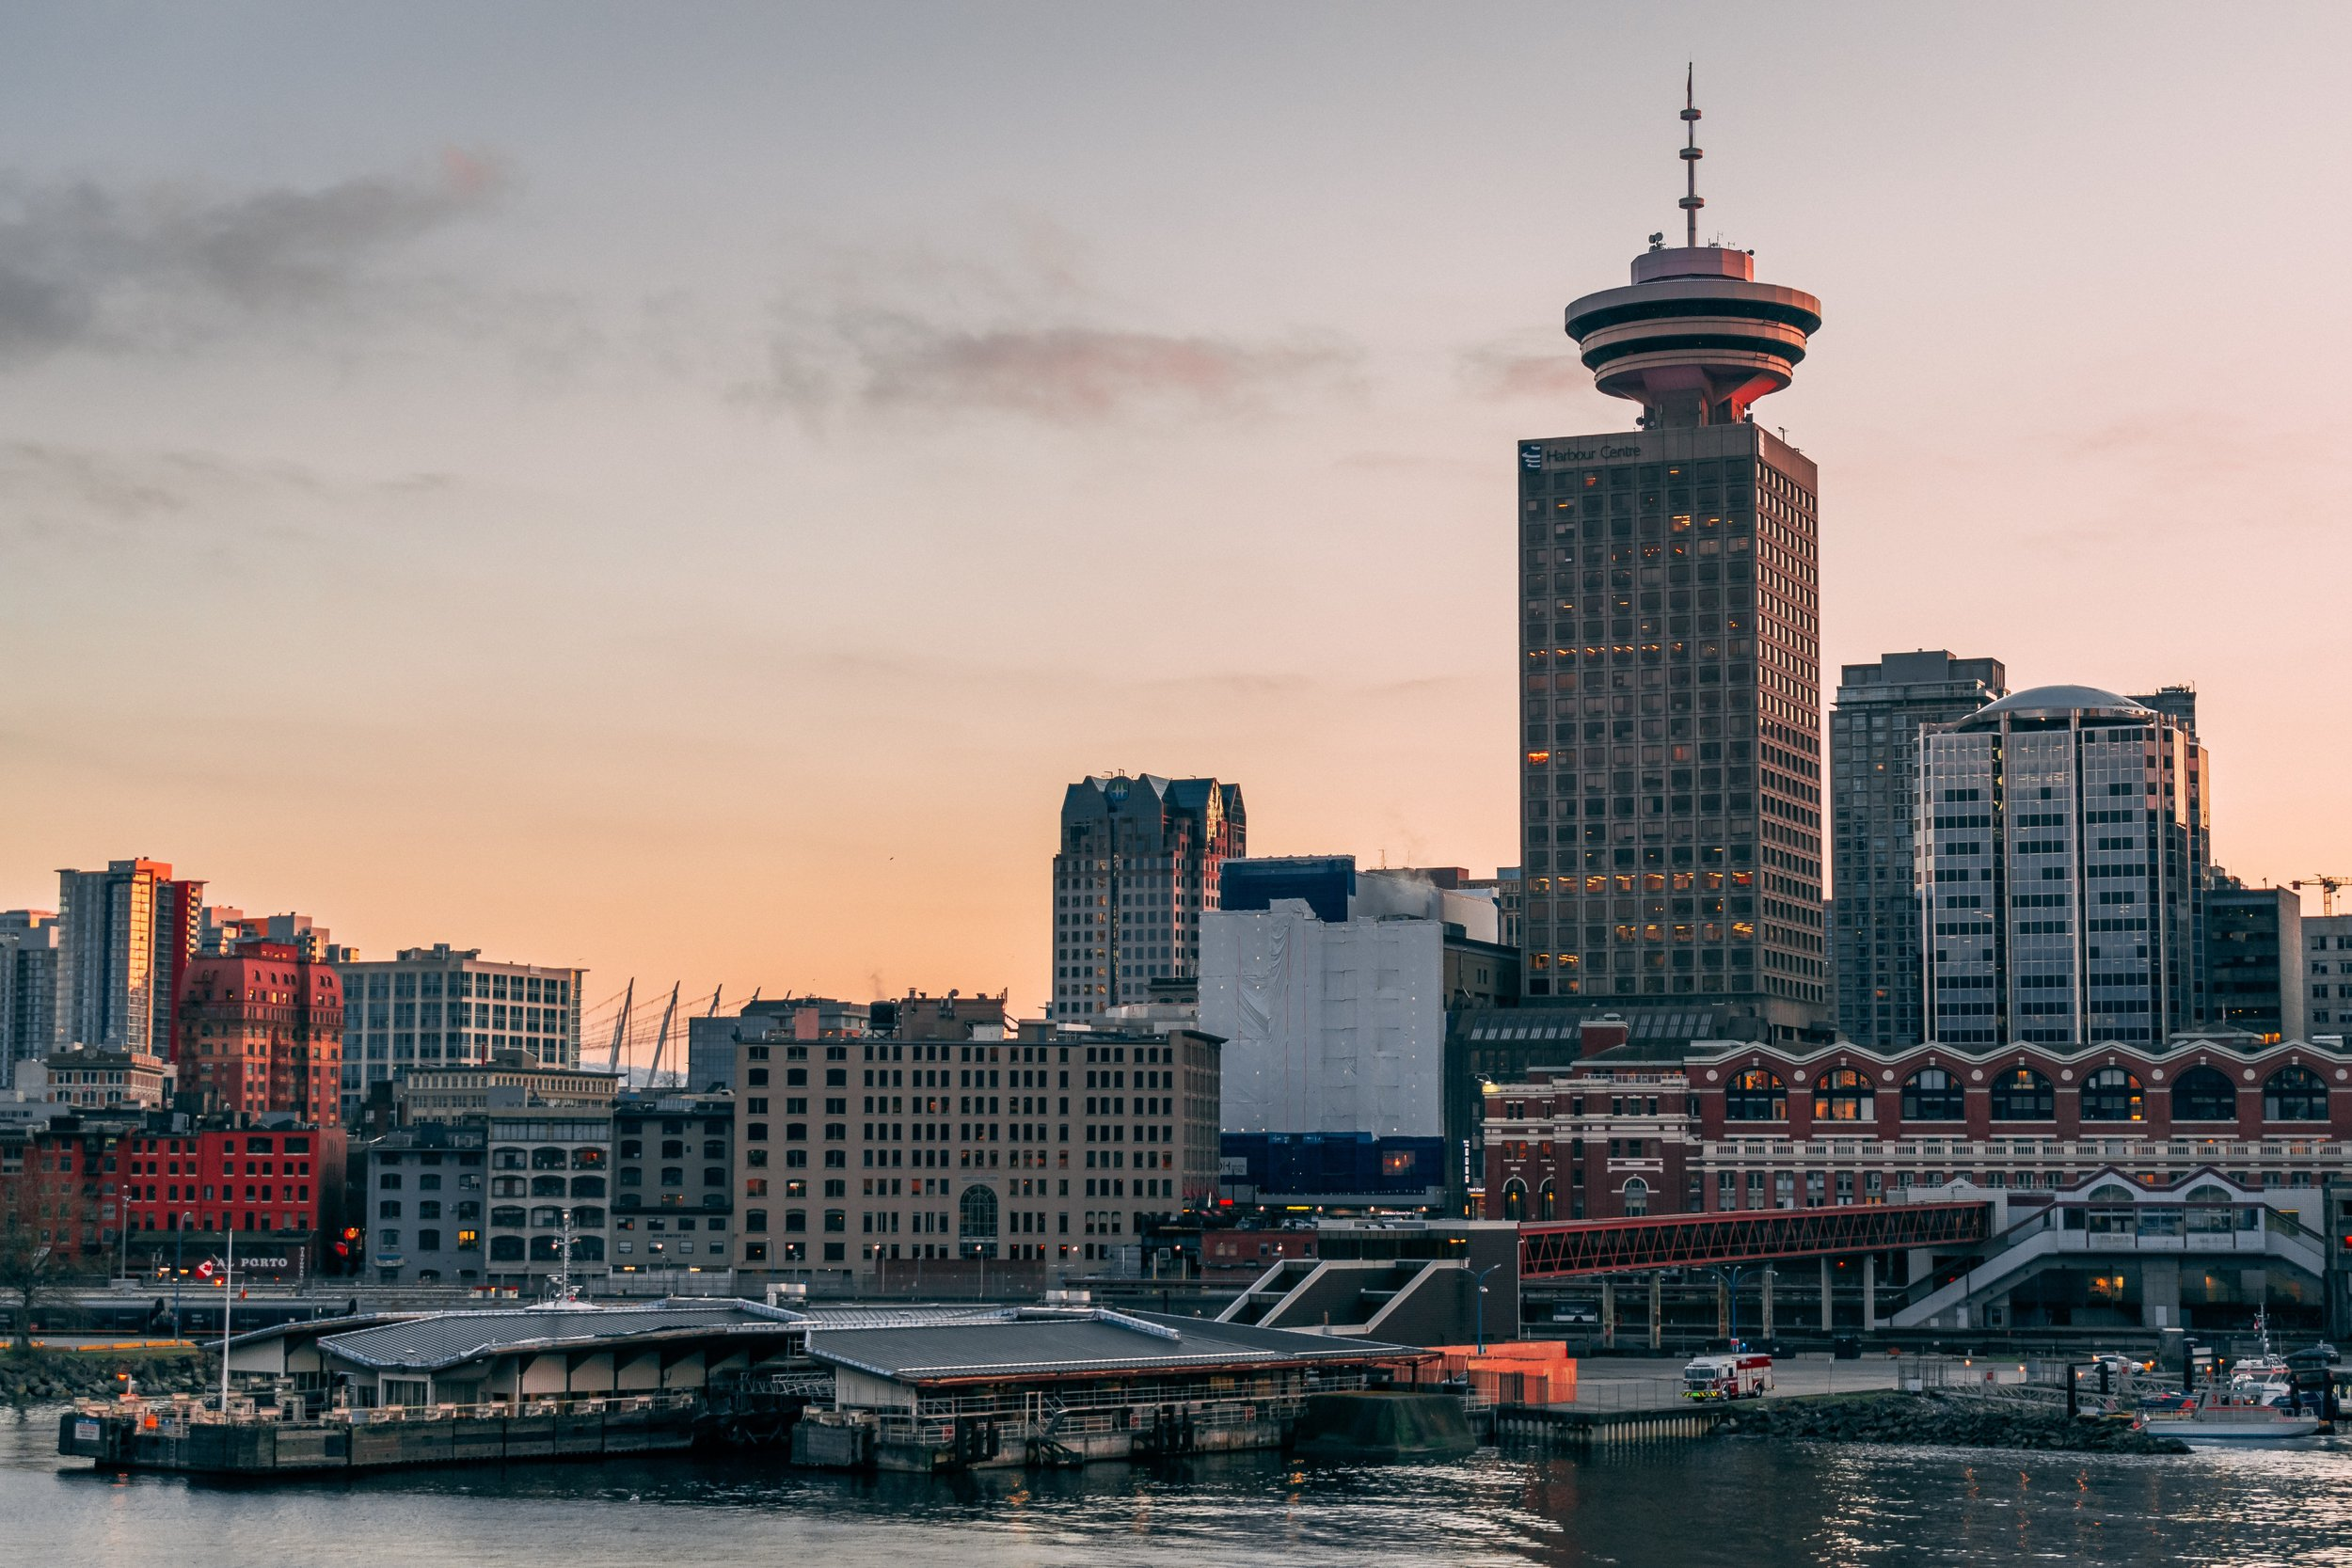 Where to Stay in Vancouver: Hostels, Hotels, B&Bs and Accommodation Advice